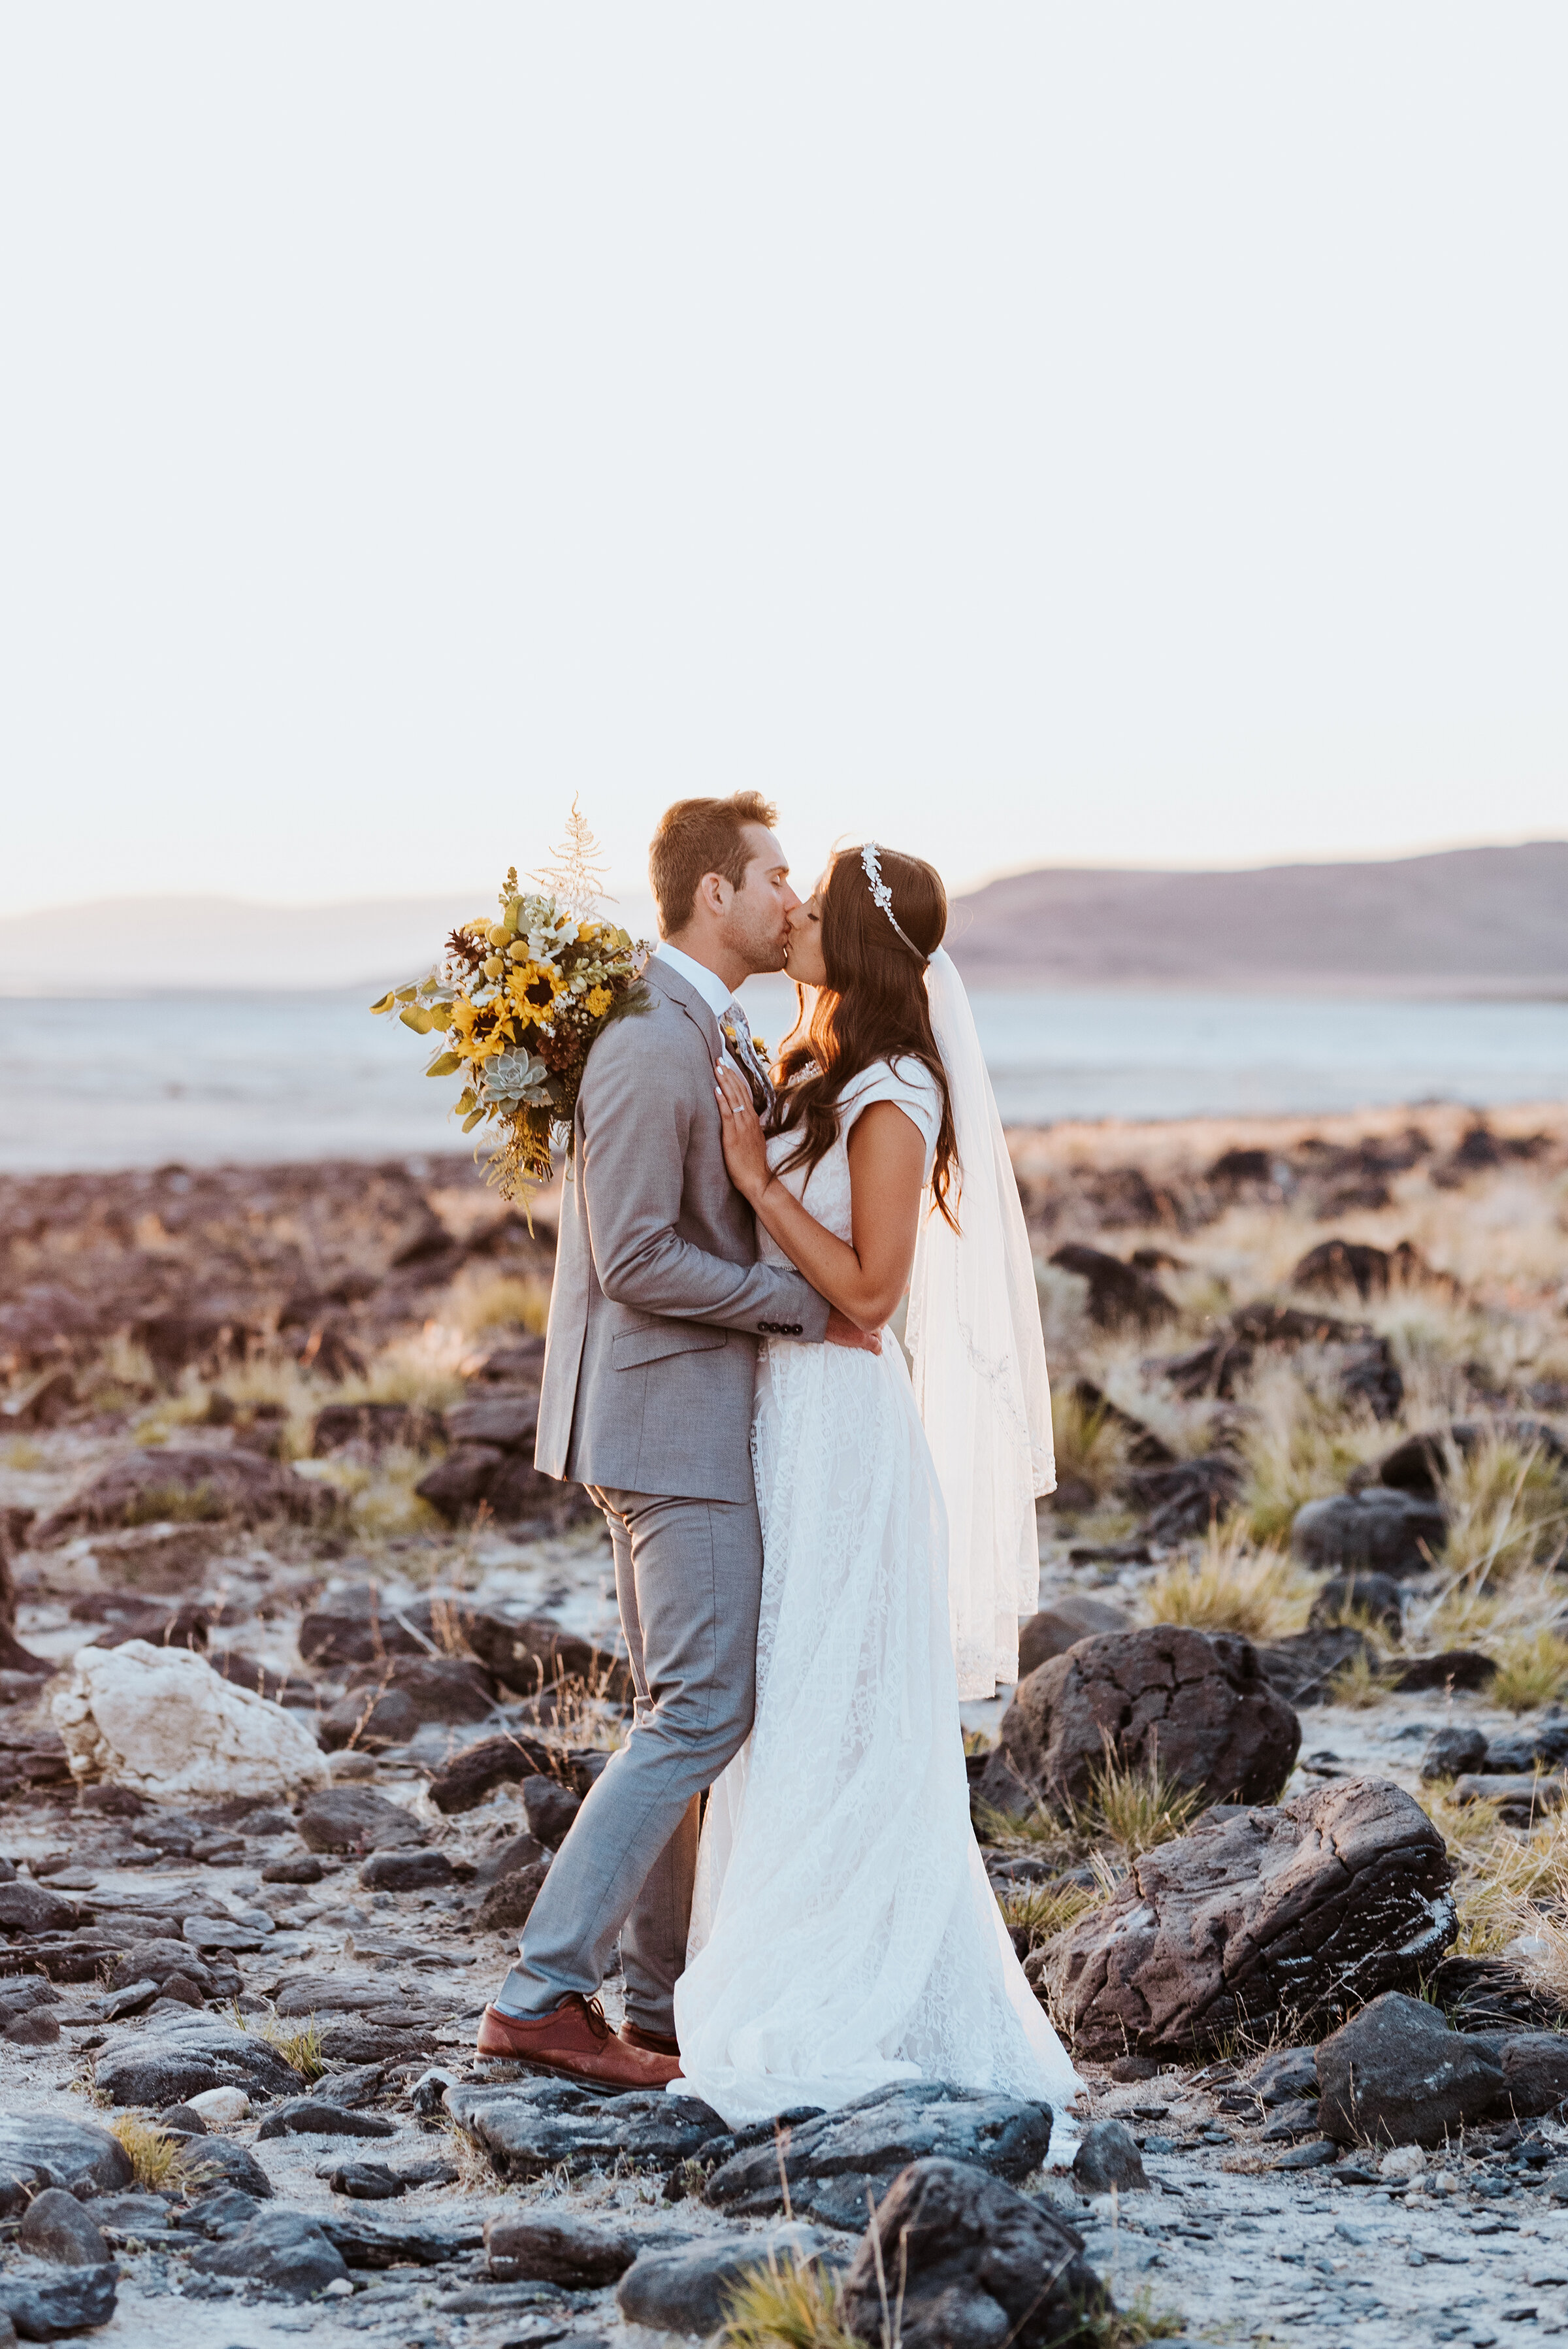 The bride and groom share a kiss just off the shore of the Great Salt Lake. The rocks provided texture to the background as the bride and groom captured the last of the sunshine rays in the distance. #spiraljetty #GreatSaltLake #formalsession #SaltFlats #sunsetphotosession #NorthernUtah #weddingphotographer #formalphotographer #brideandgroom #outdoorformals #weddingformalphotography